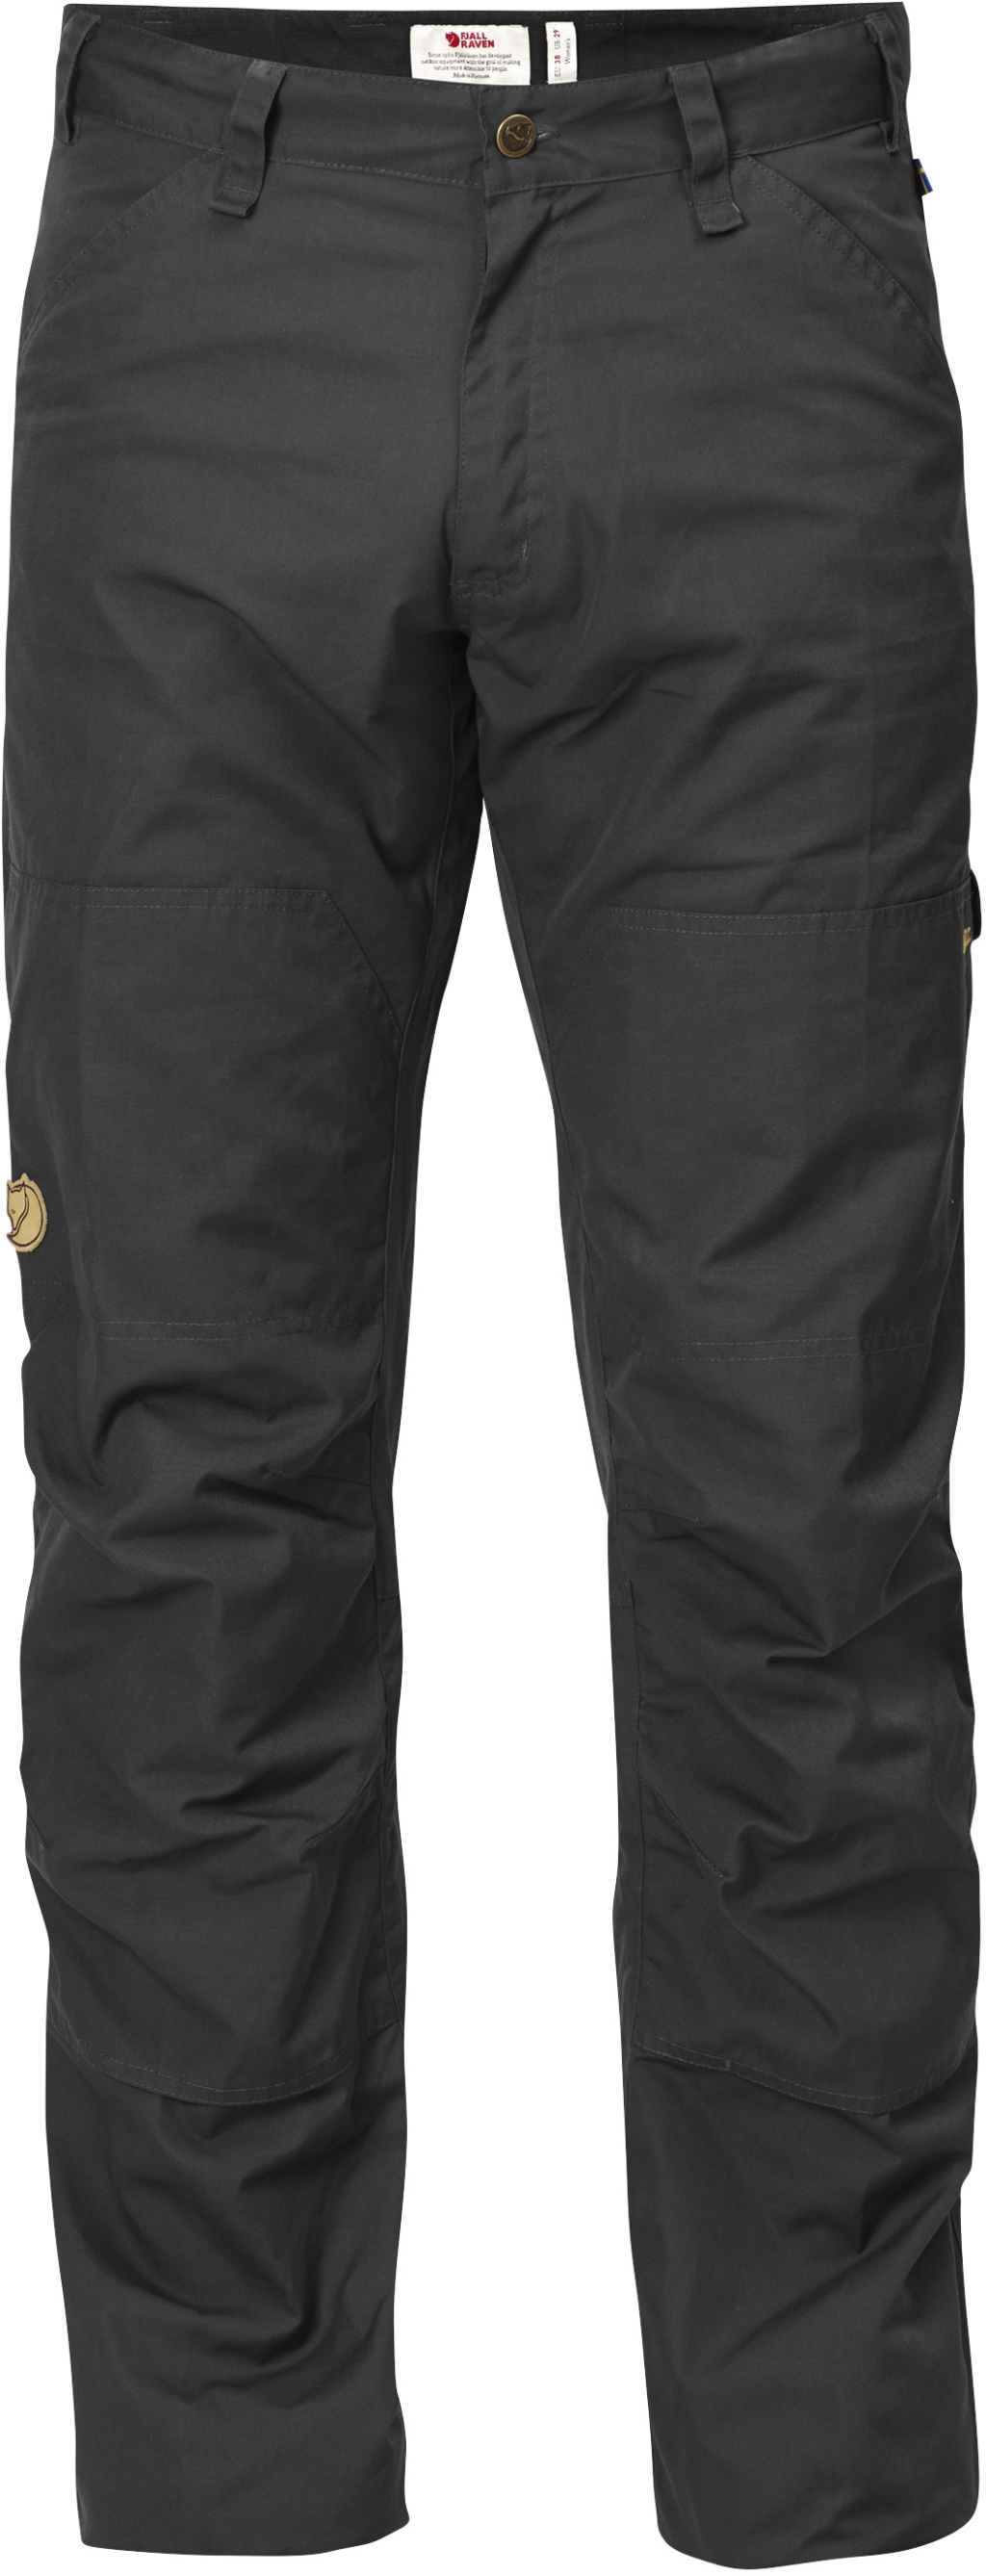 FjallRaven Barents Pro Jeans Dark Grey-30